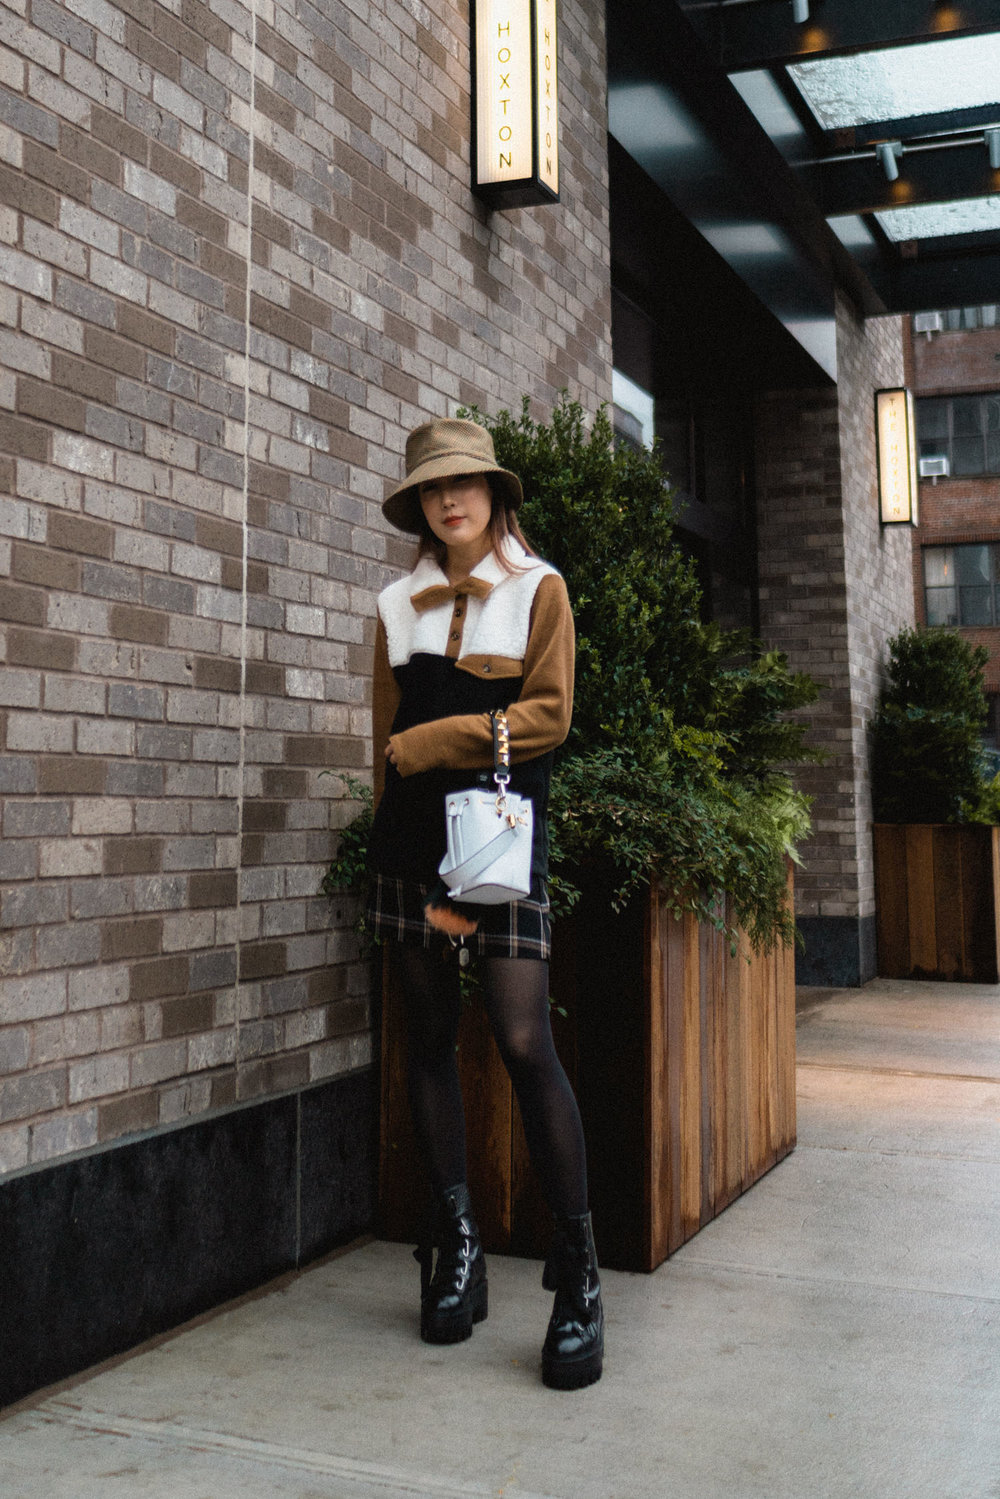 Donni Sweater , Reformation Skirt, Ellery Boots,  Fendi Bag ,  Eric Javits Hat